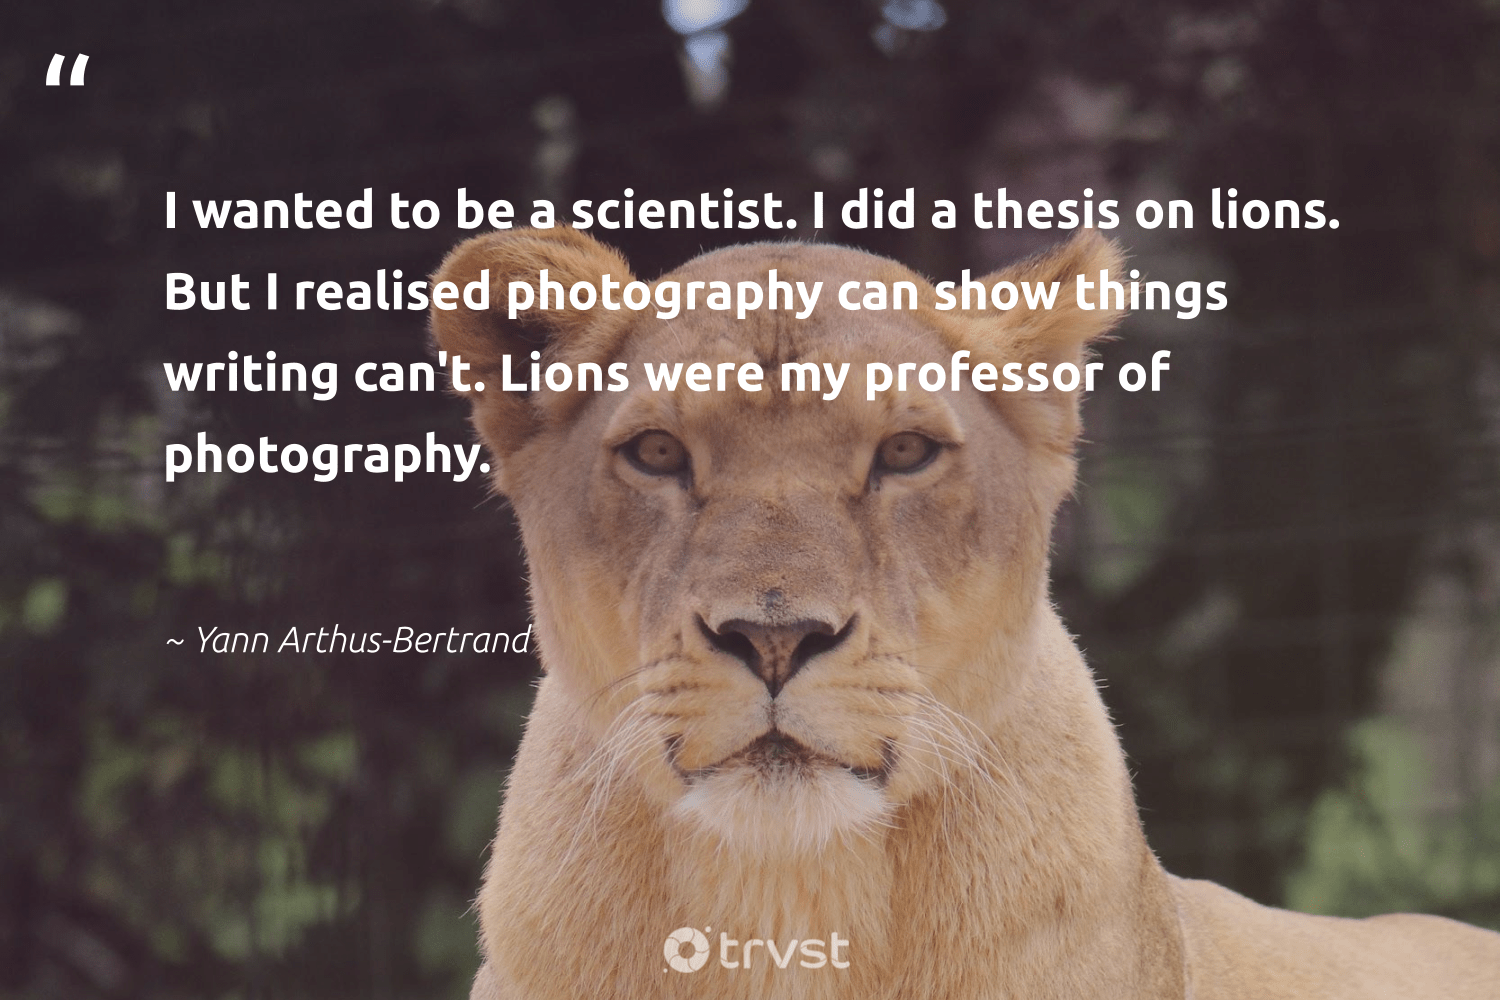 """""""I wanted to be a scientist. I did a thesis on lions. But I realised photography can show things writing can't. Lions were my professor of photography.""""  - Yann Arthus-Bertrand #trvst #quotes #lions #protectnature #dotherightthing #bigcats #gogreen #biodiversity #takeaction #sustainability #beinspired #perfectnature"""